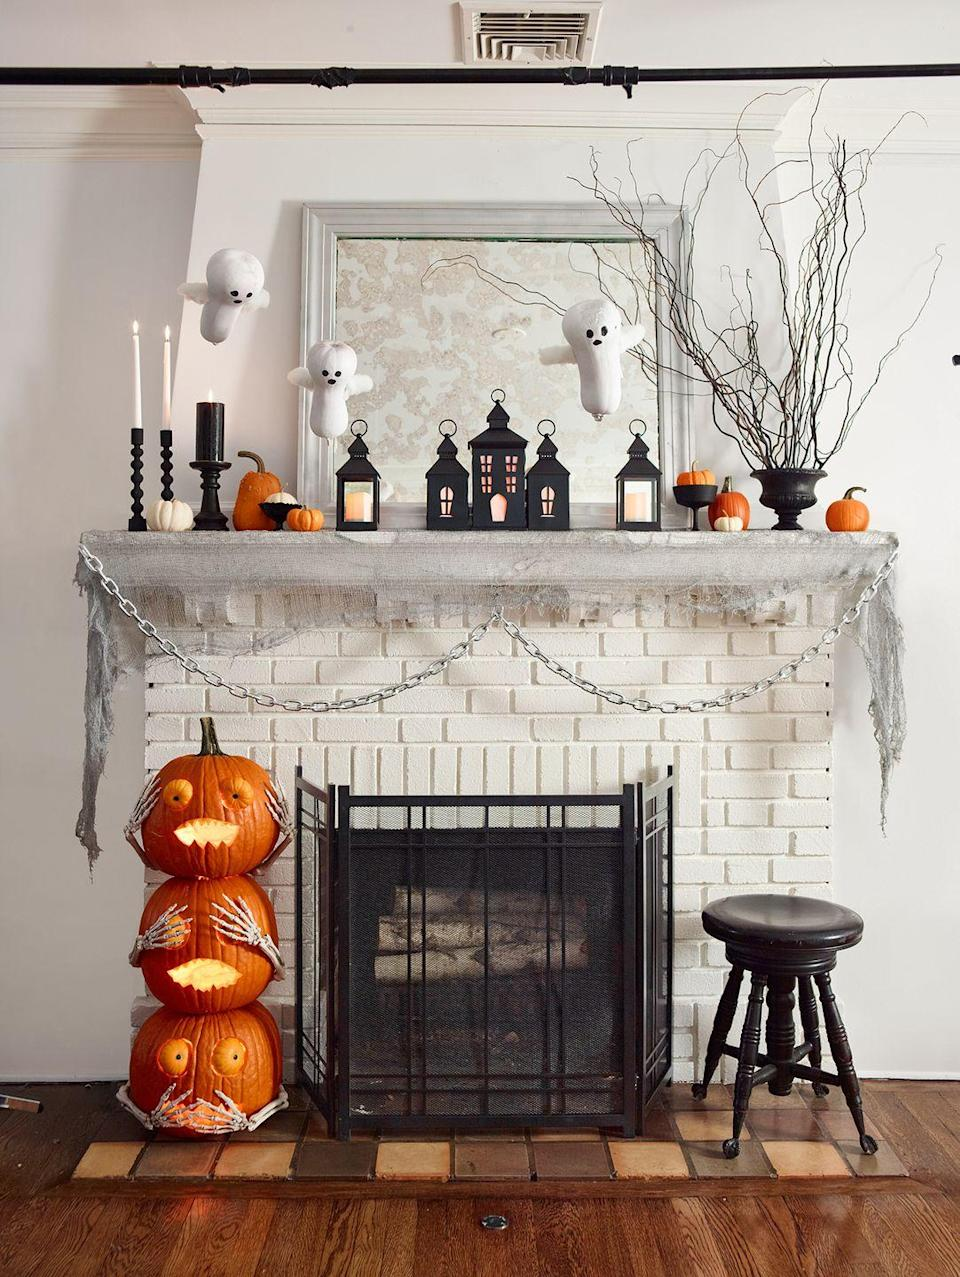 <p>Kids would be impressed with this creepy Halloween mantel display, including hanging ghosts, haunted house lanterns, pumpkins and dark branches.</p>